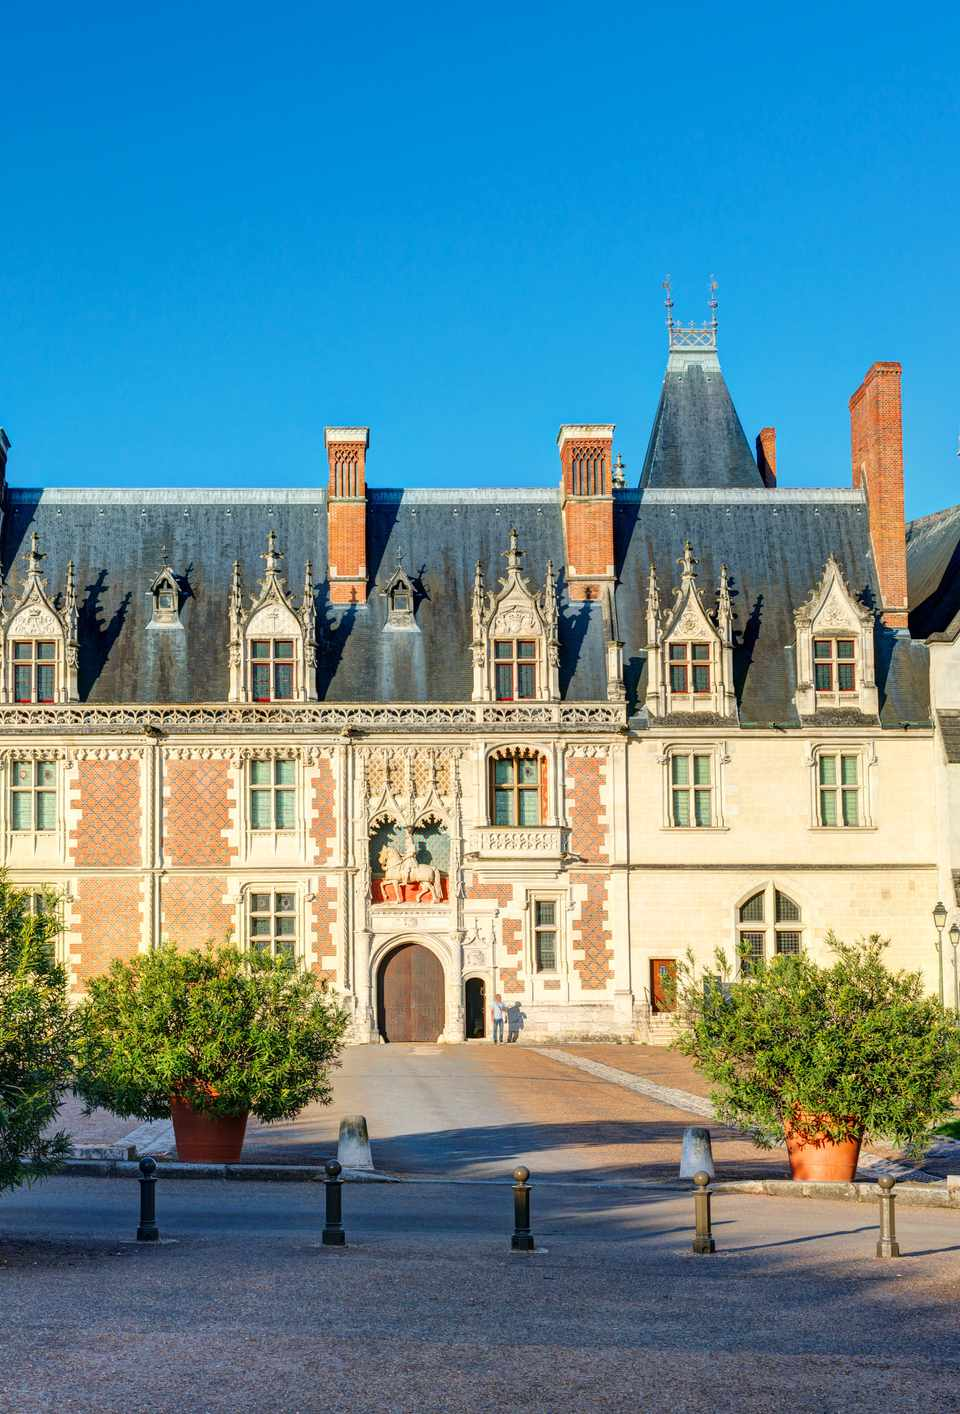 The chateau Royal de Blois: the facade of the Louis XII wing. This old palace is located in the Loire Valley in the center of the city of Blois, France.